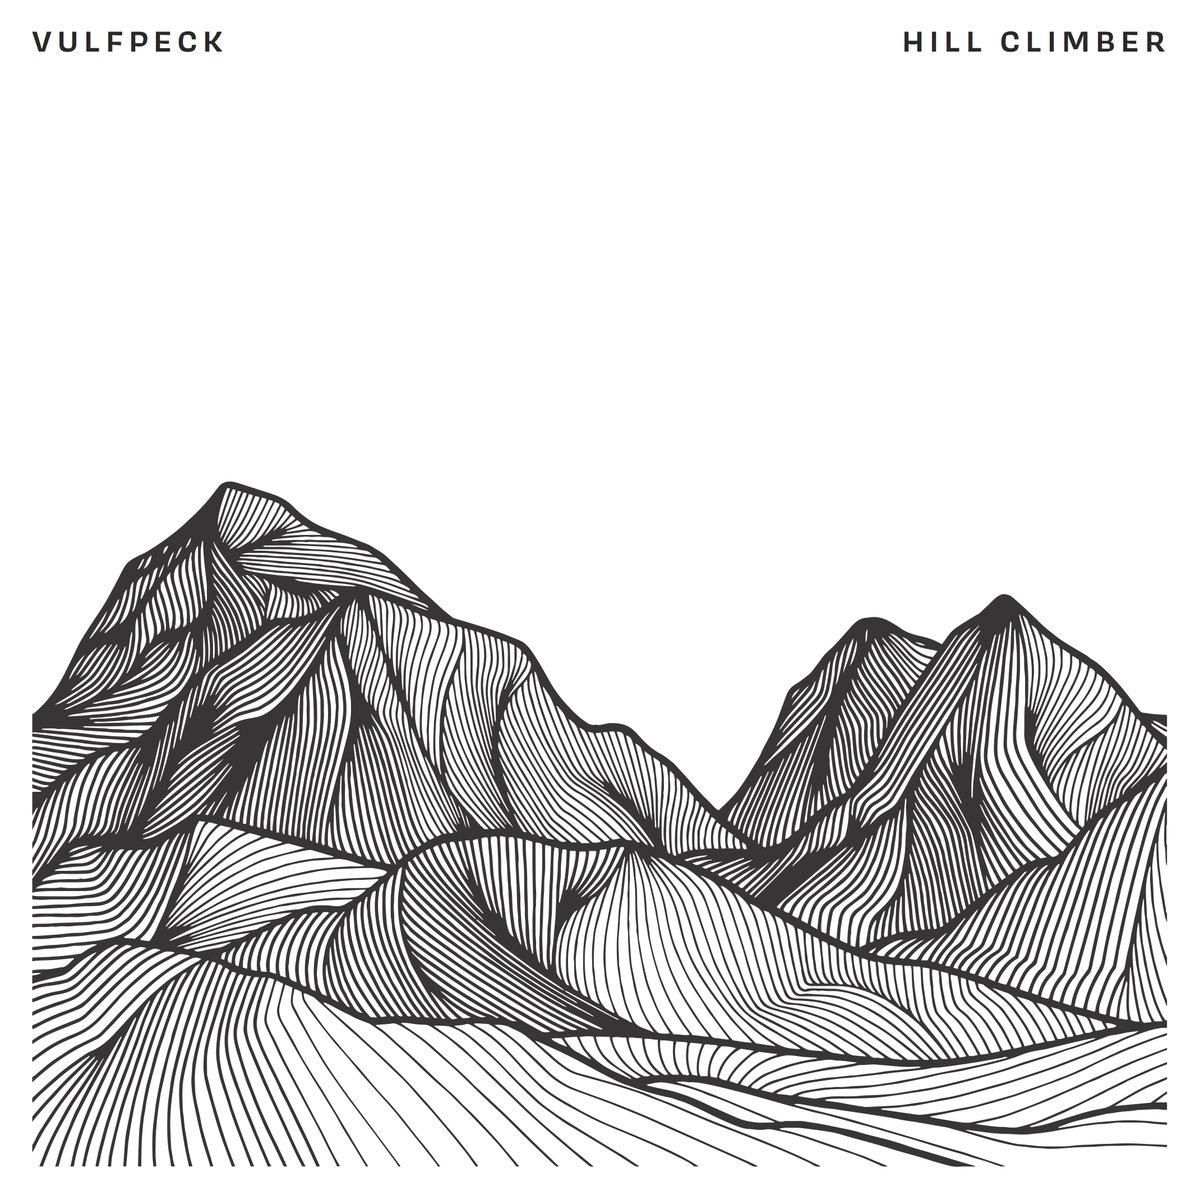 Hill Climber, released Dec. 7, 2018, is Vulfpeck's fourth studio album and eighth project total. Vulfpeck releases music on their own label, Vulf Records, run by front man Jack Stratton.